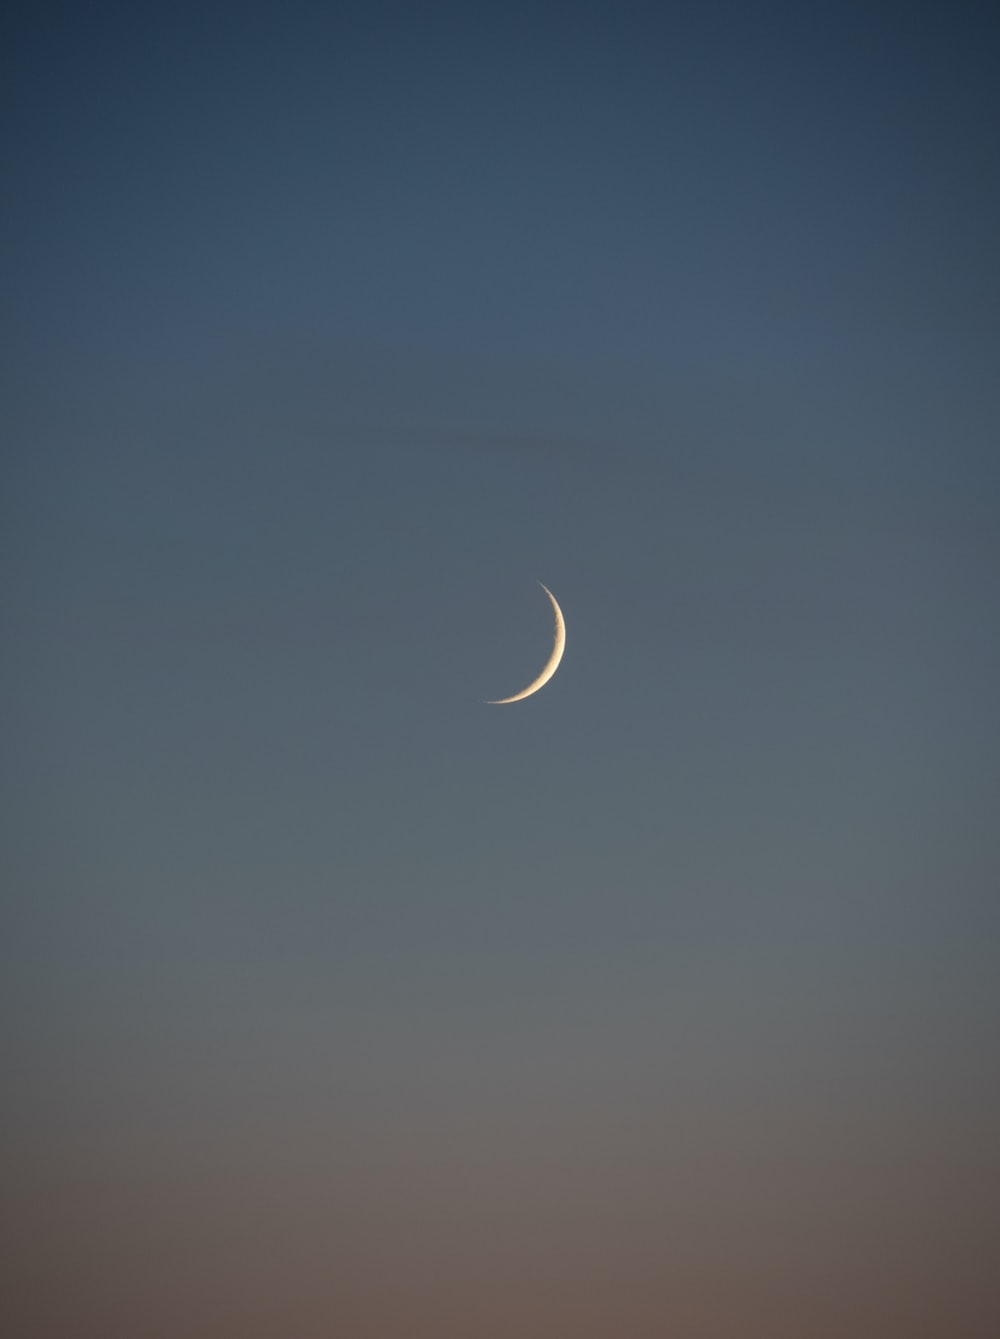 white crescent moon in the sky